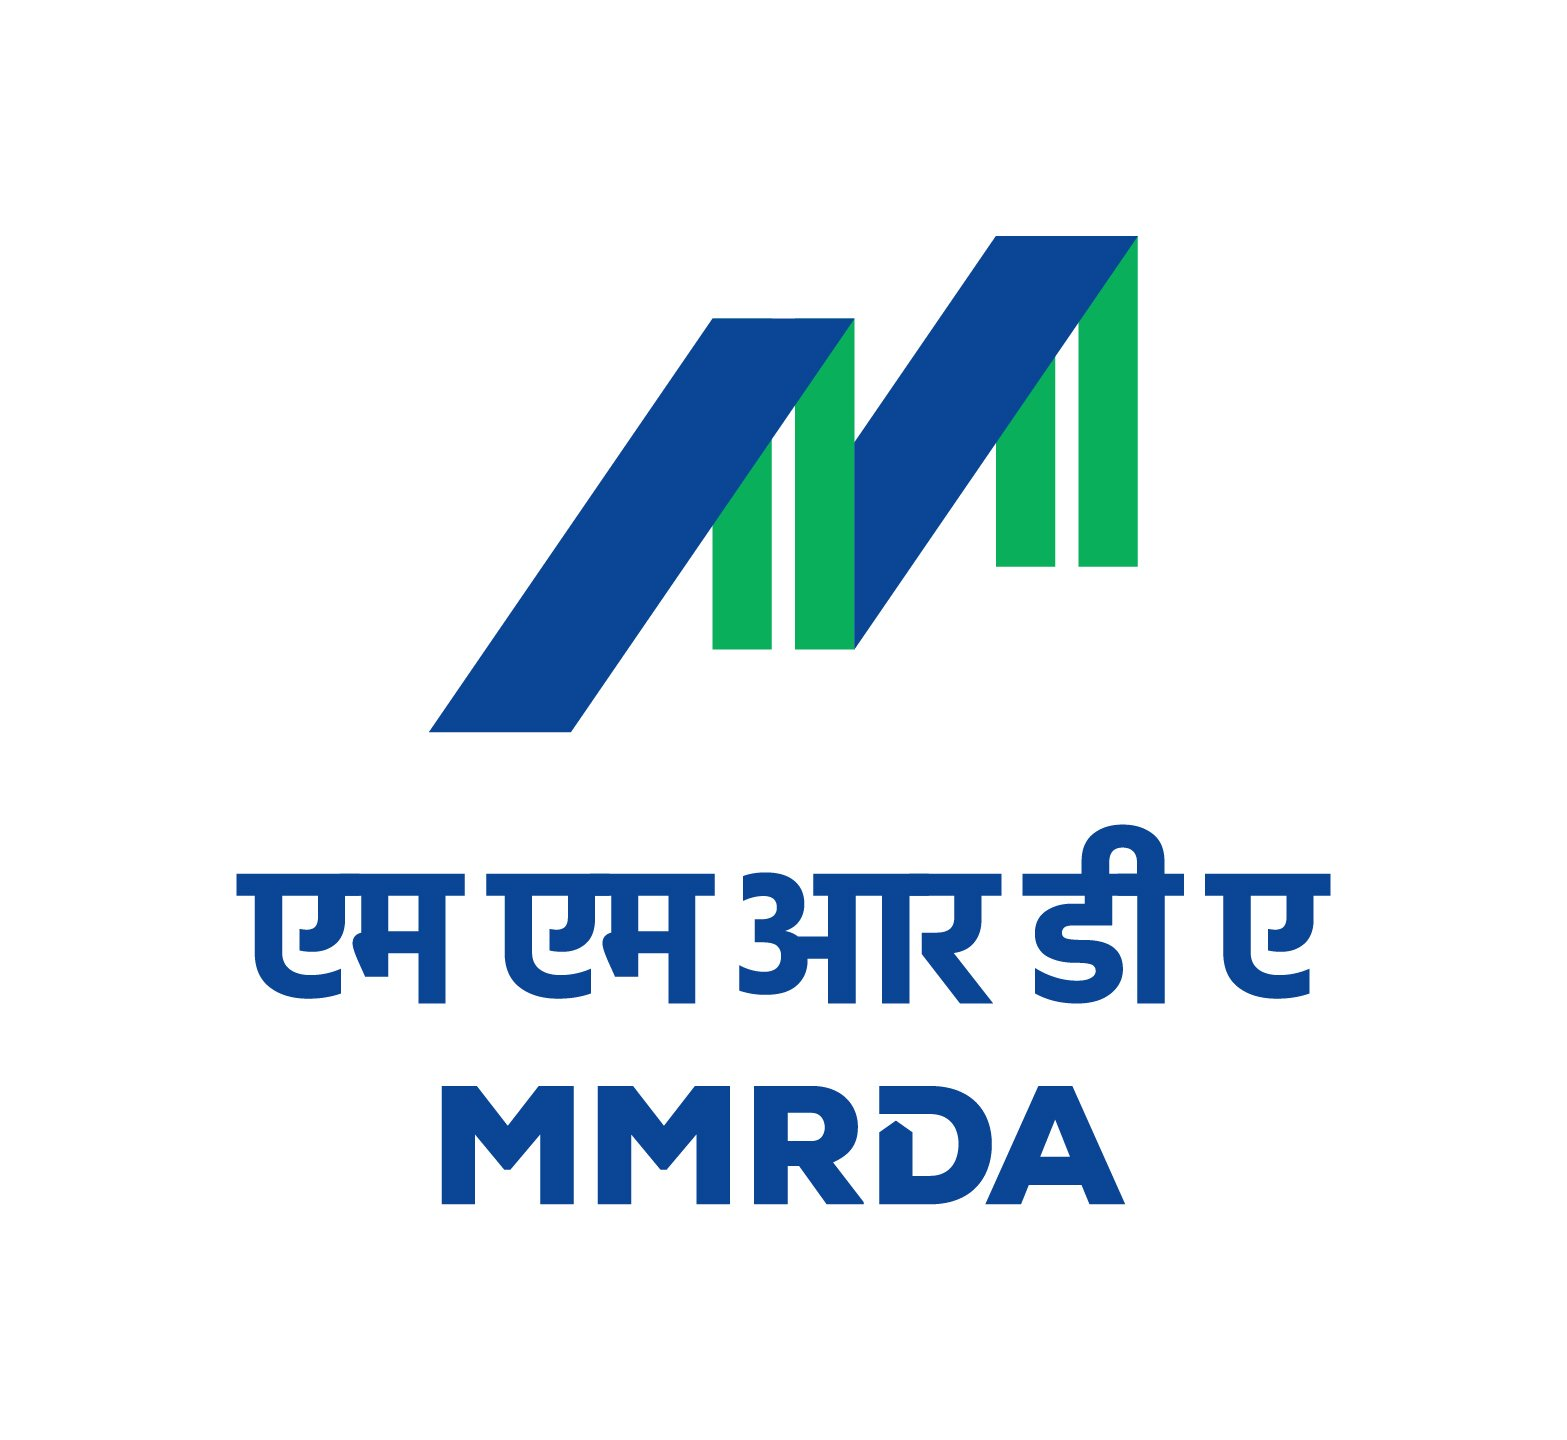 MMRDA Recruitment 2020 – Apply Online For 215 Non-Executive Posts